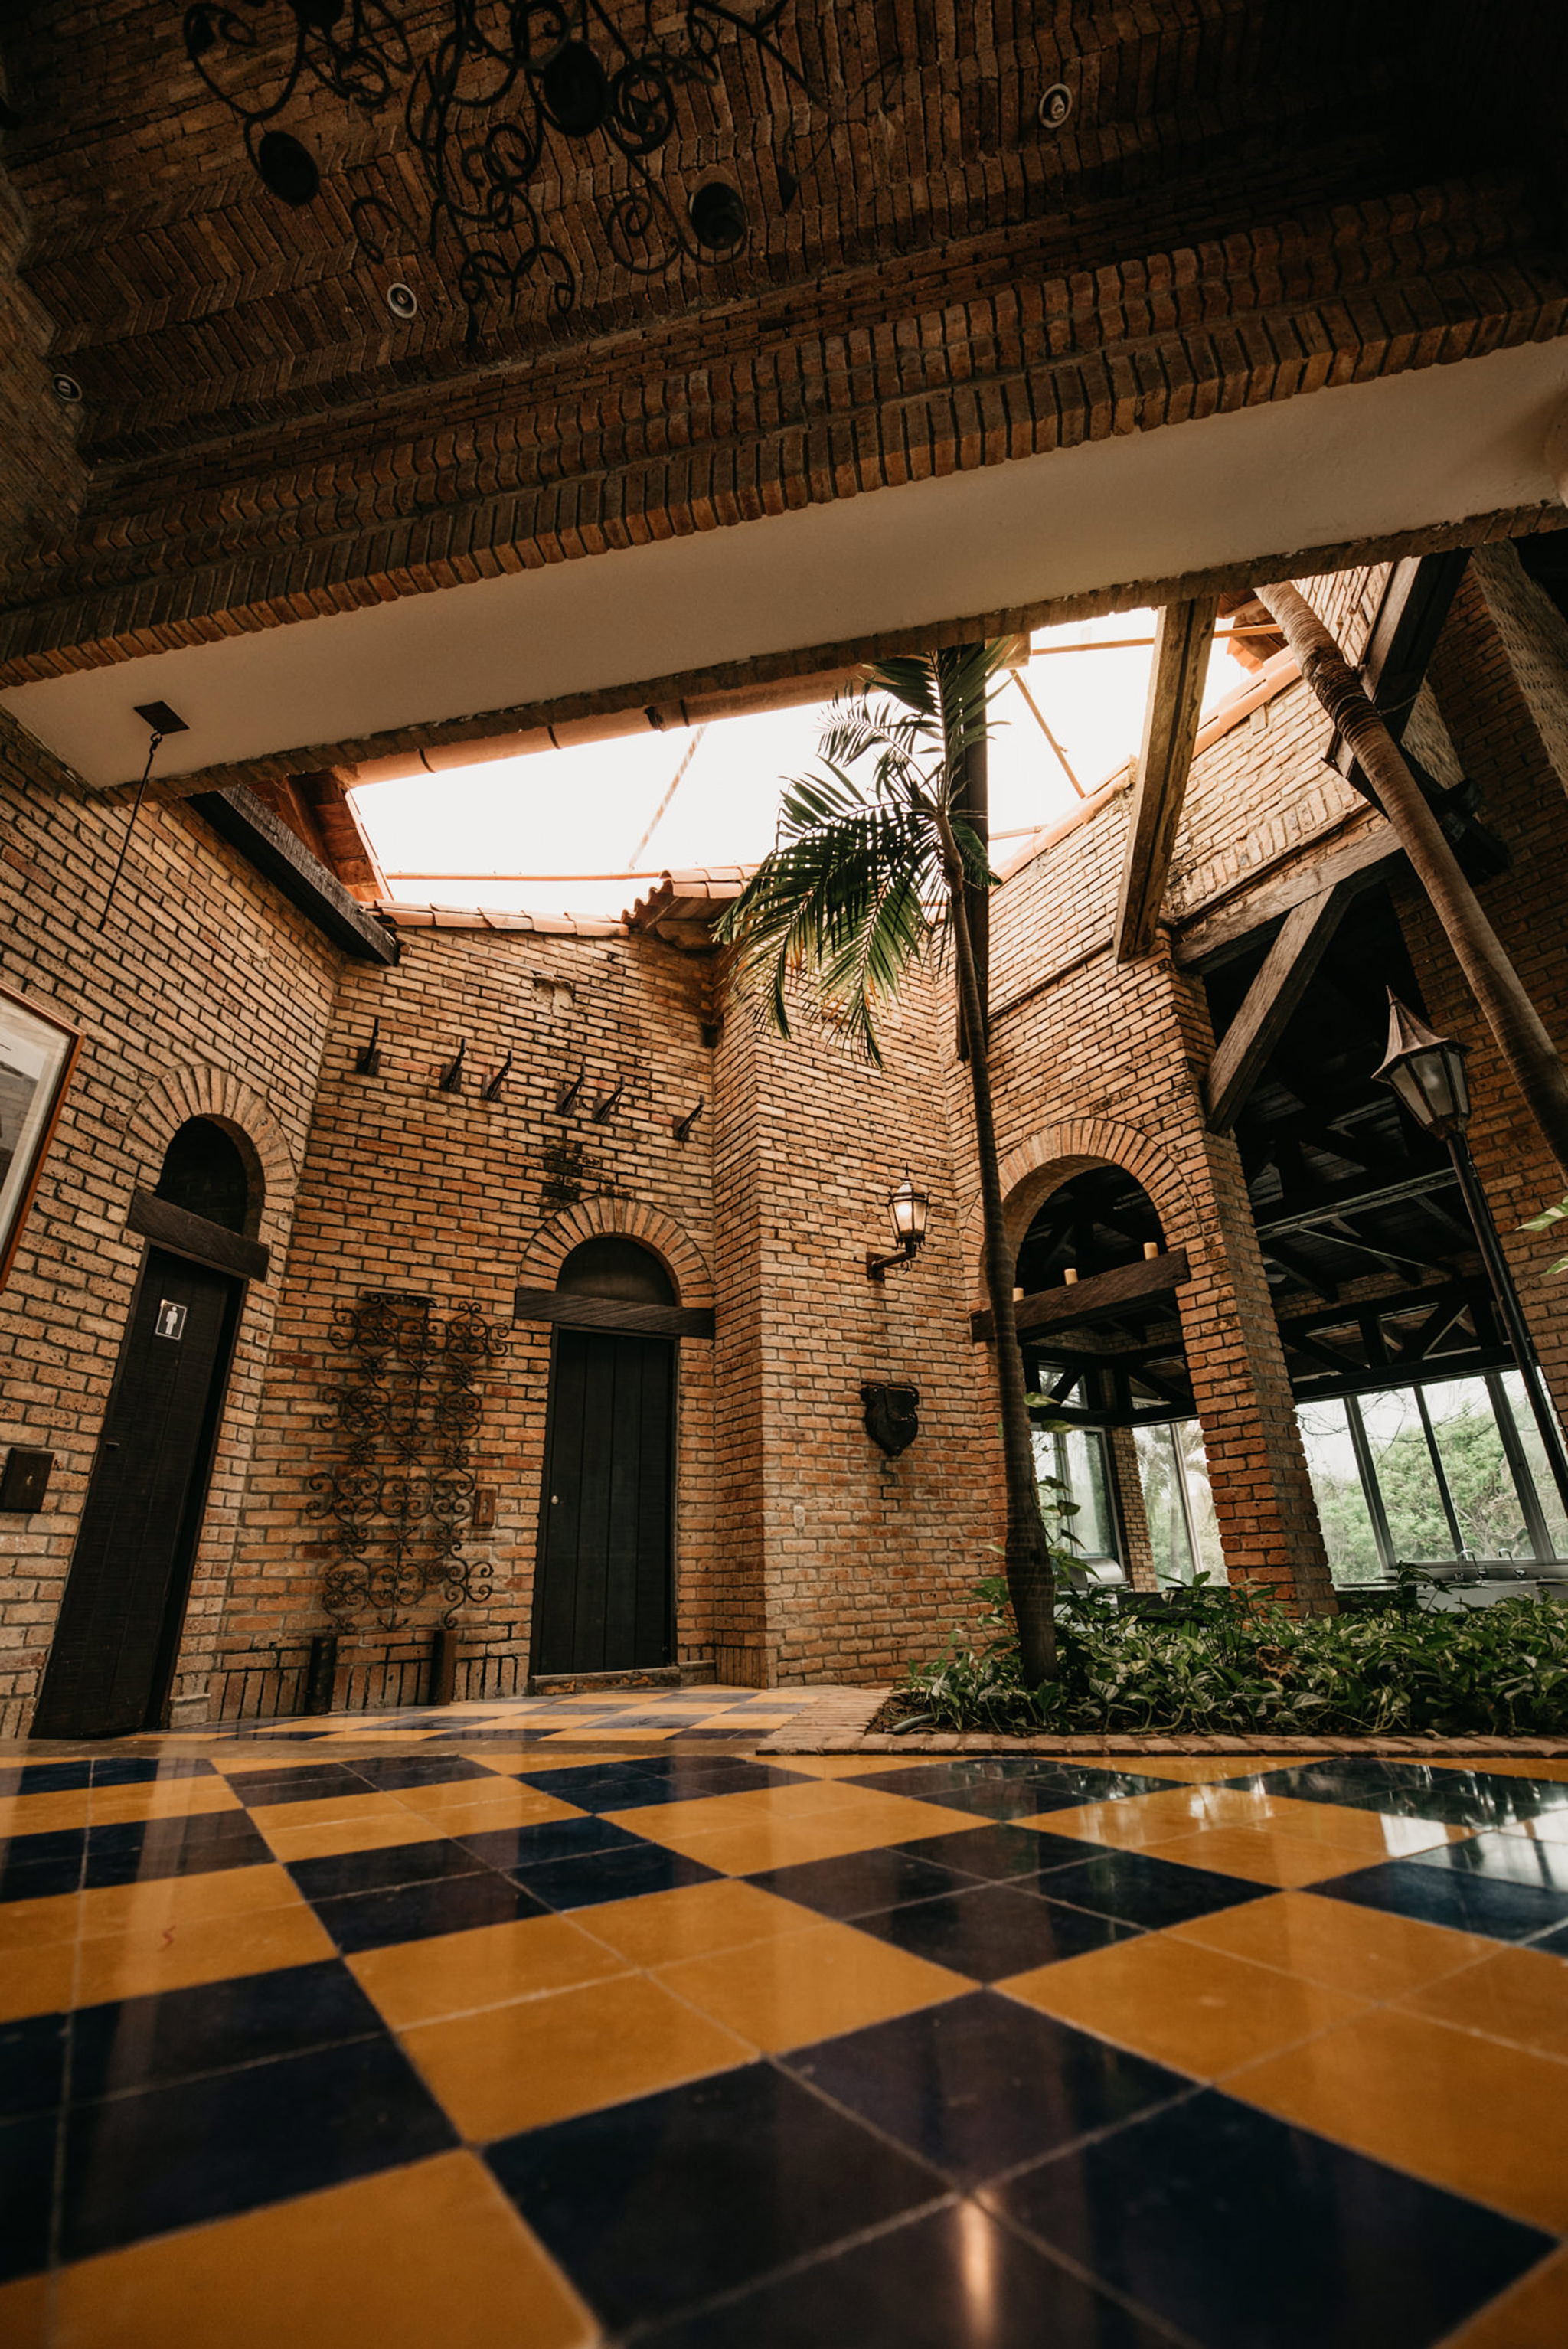 country-international-hotel-casa-campestre-country-house-hoteles